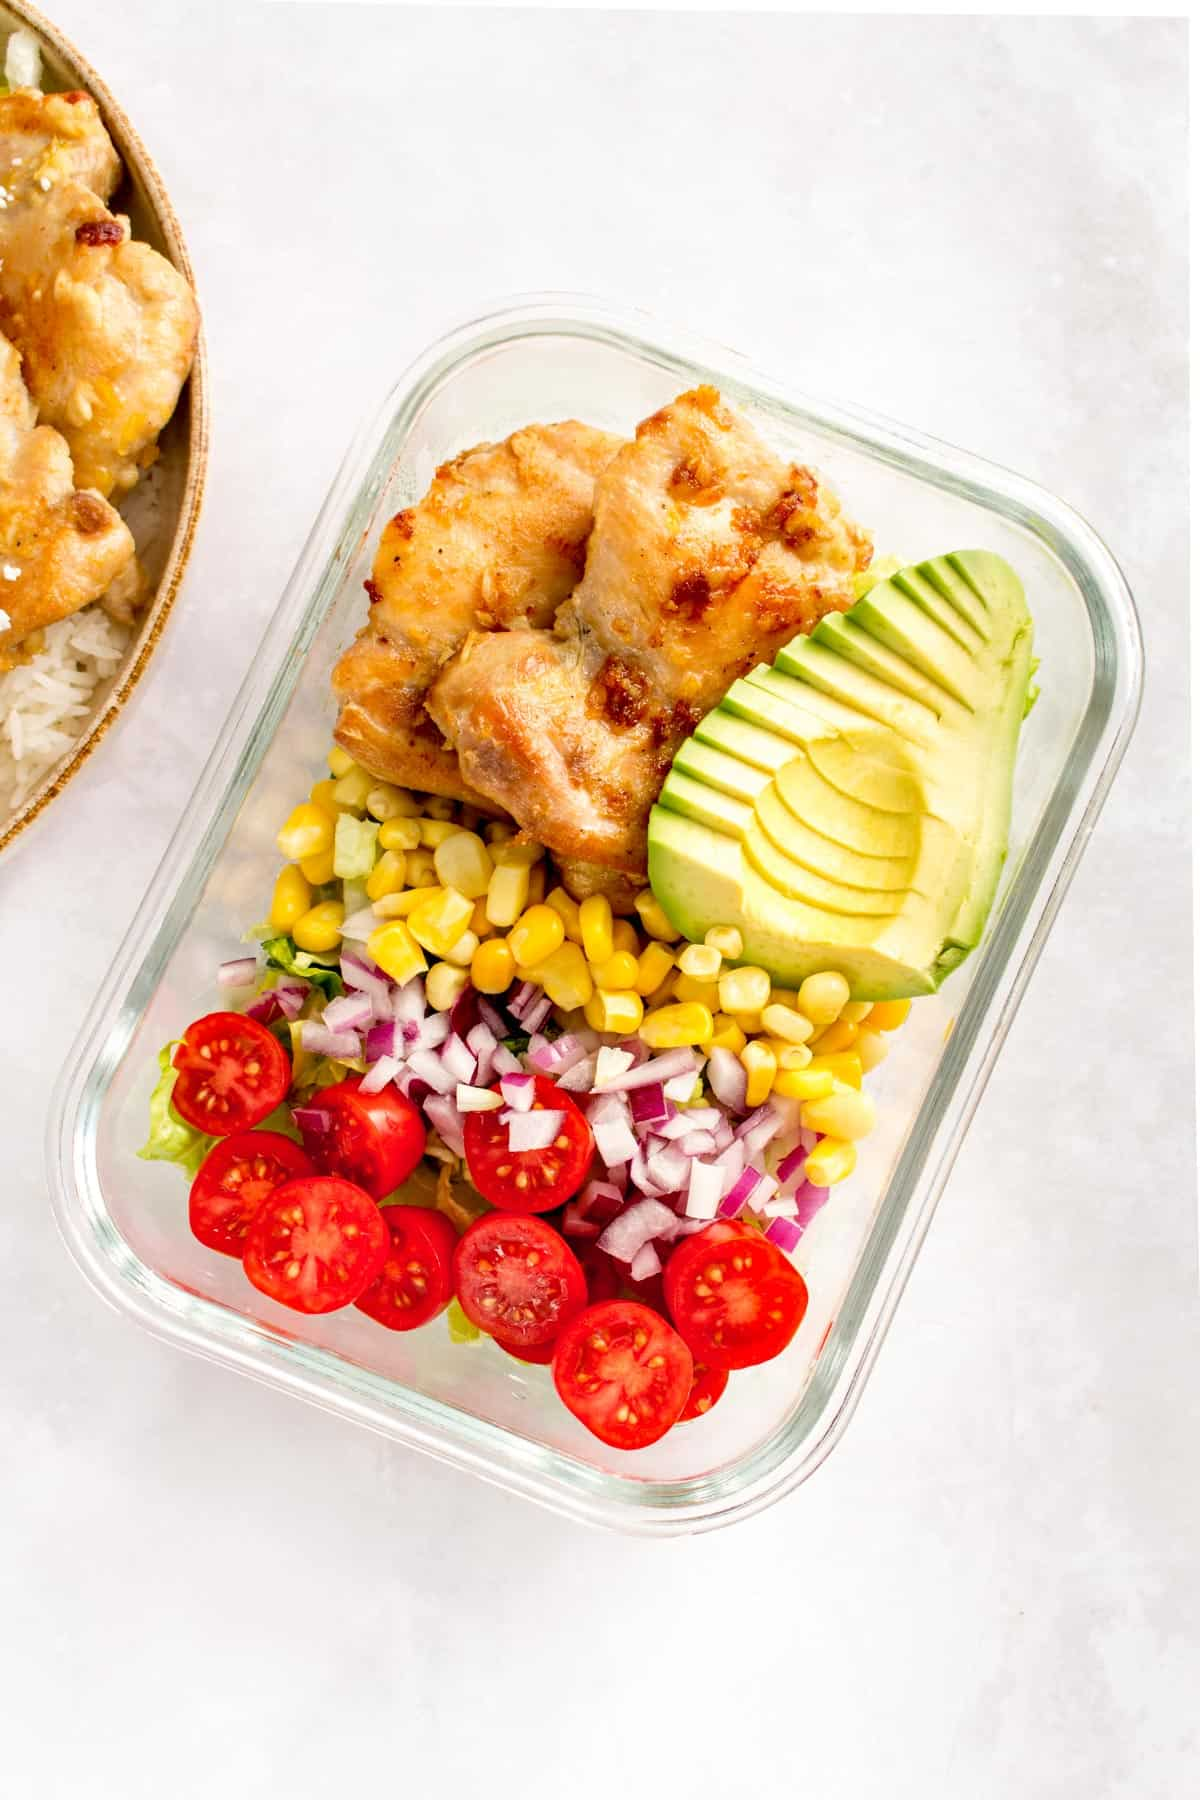 Glass meal prep container with lettuce, tomatoes, red onions, corn, chicken thighs, and a sliced avocado.